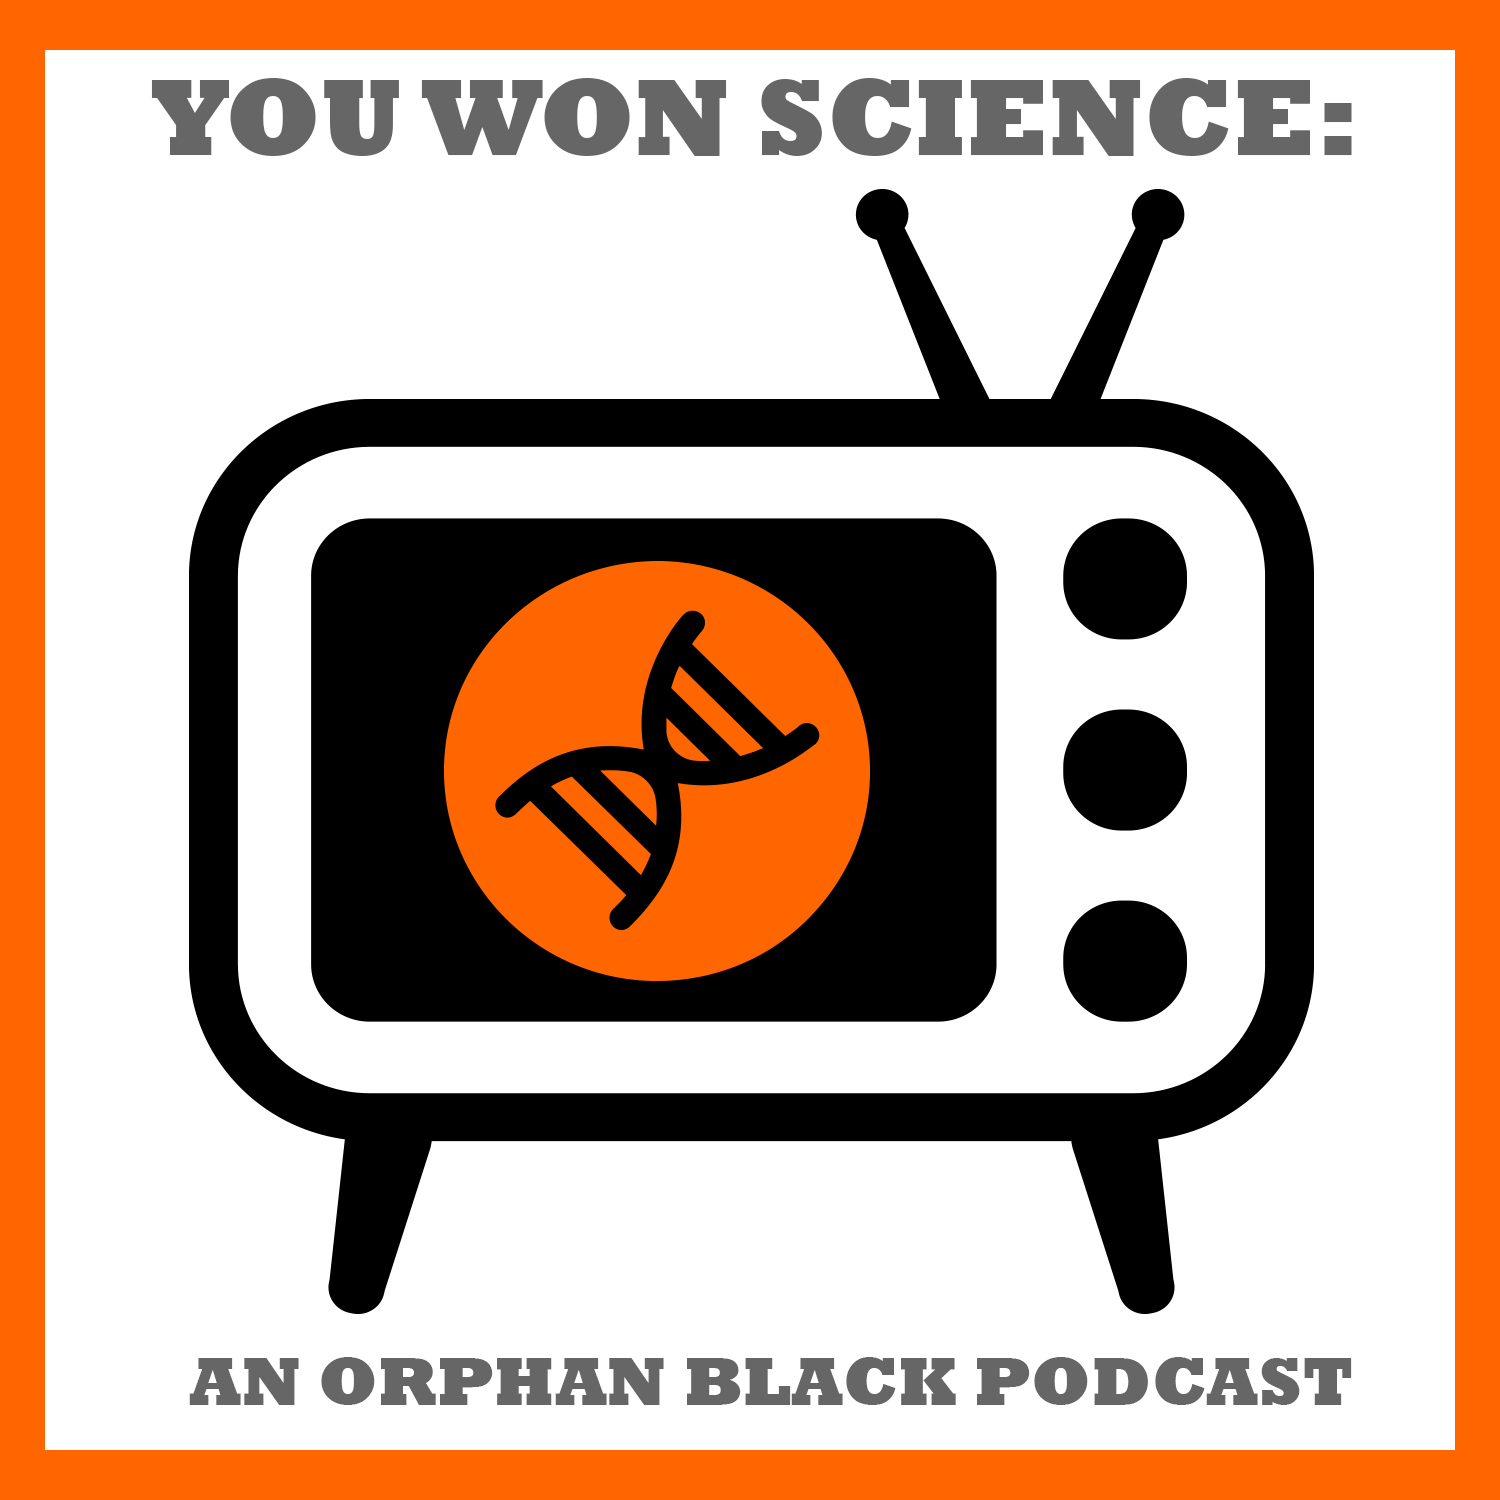 You Won Science: An Orphan Black Podcast show art